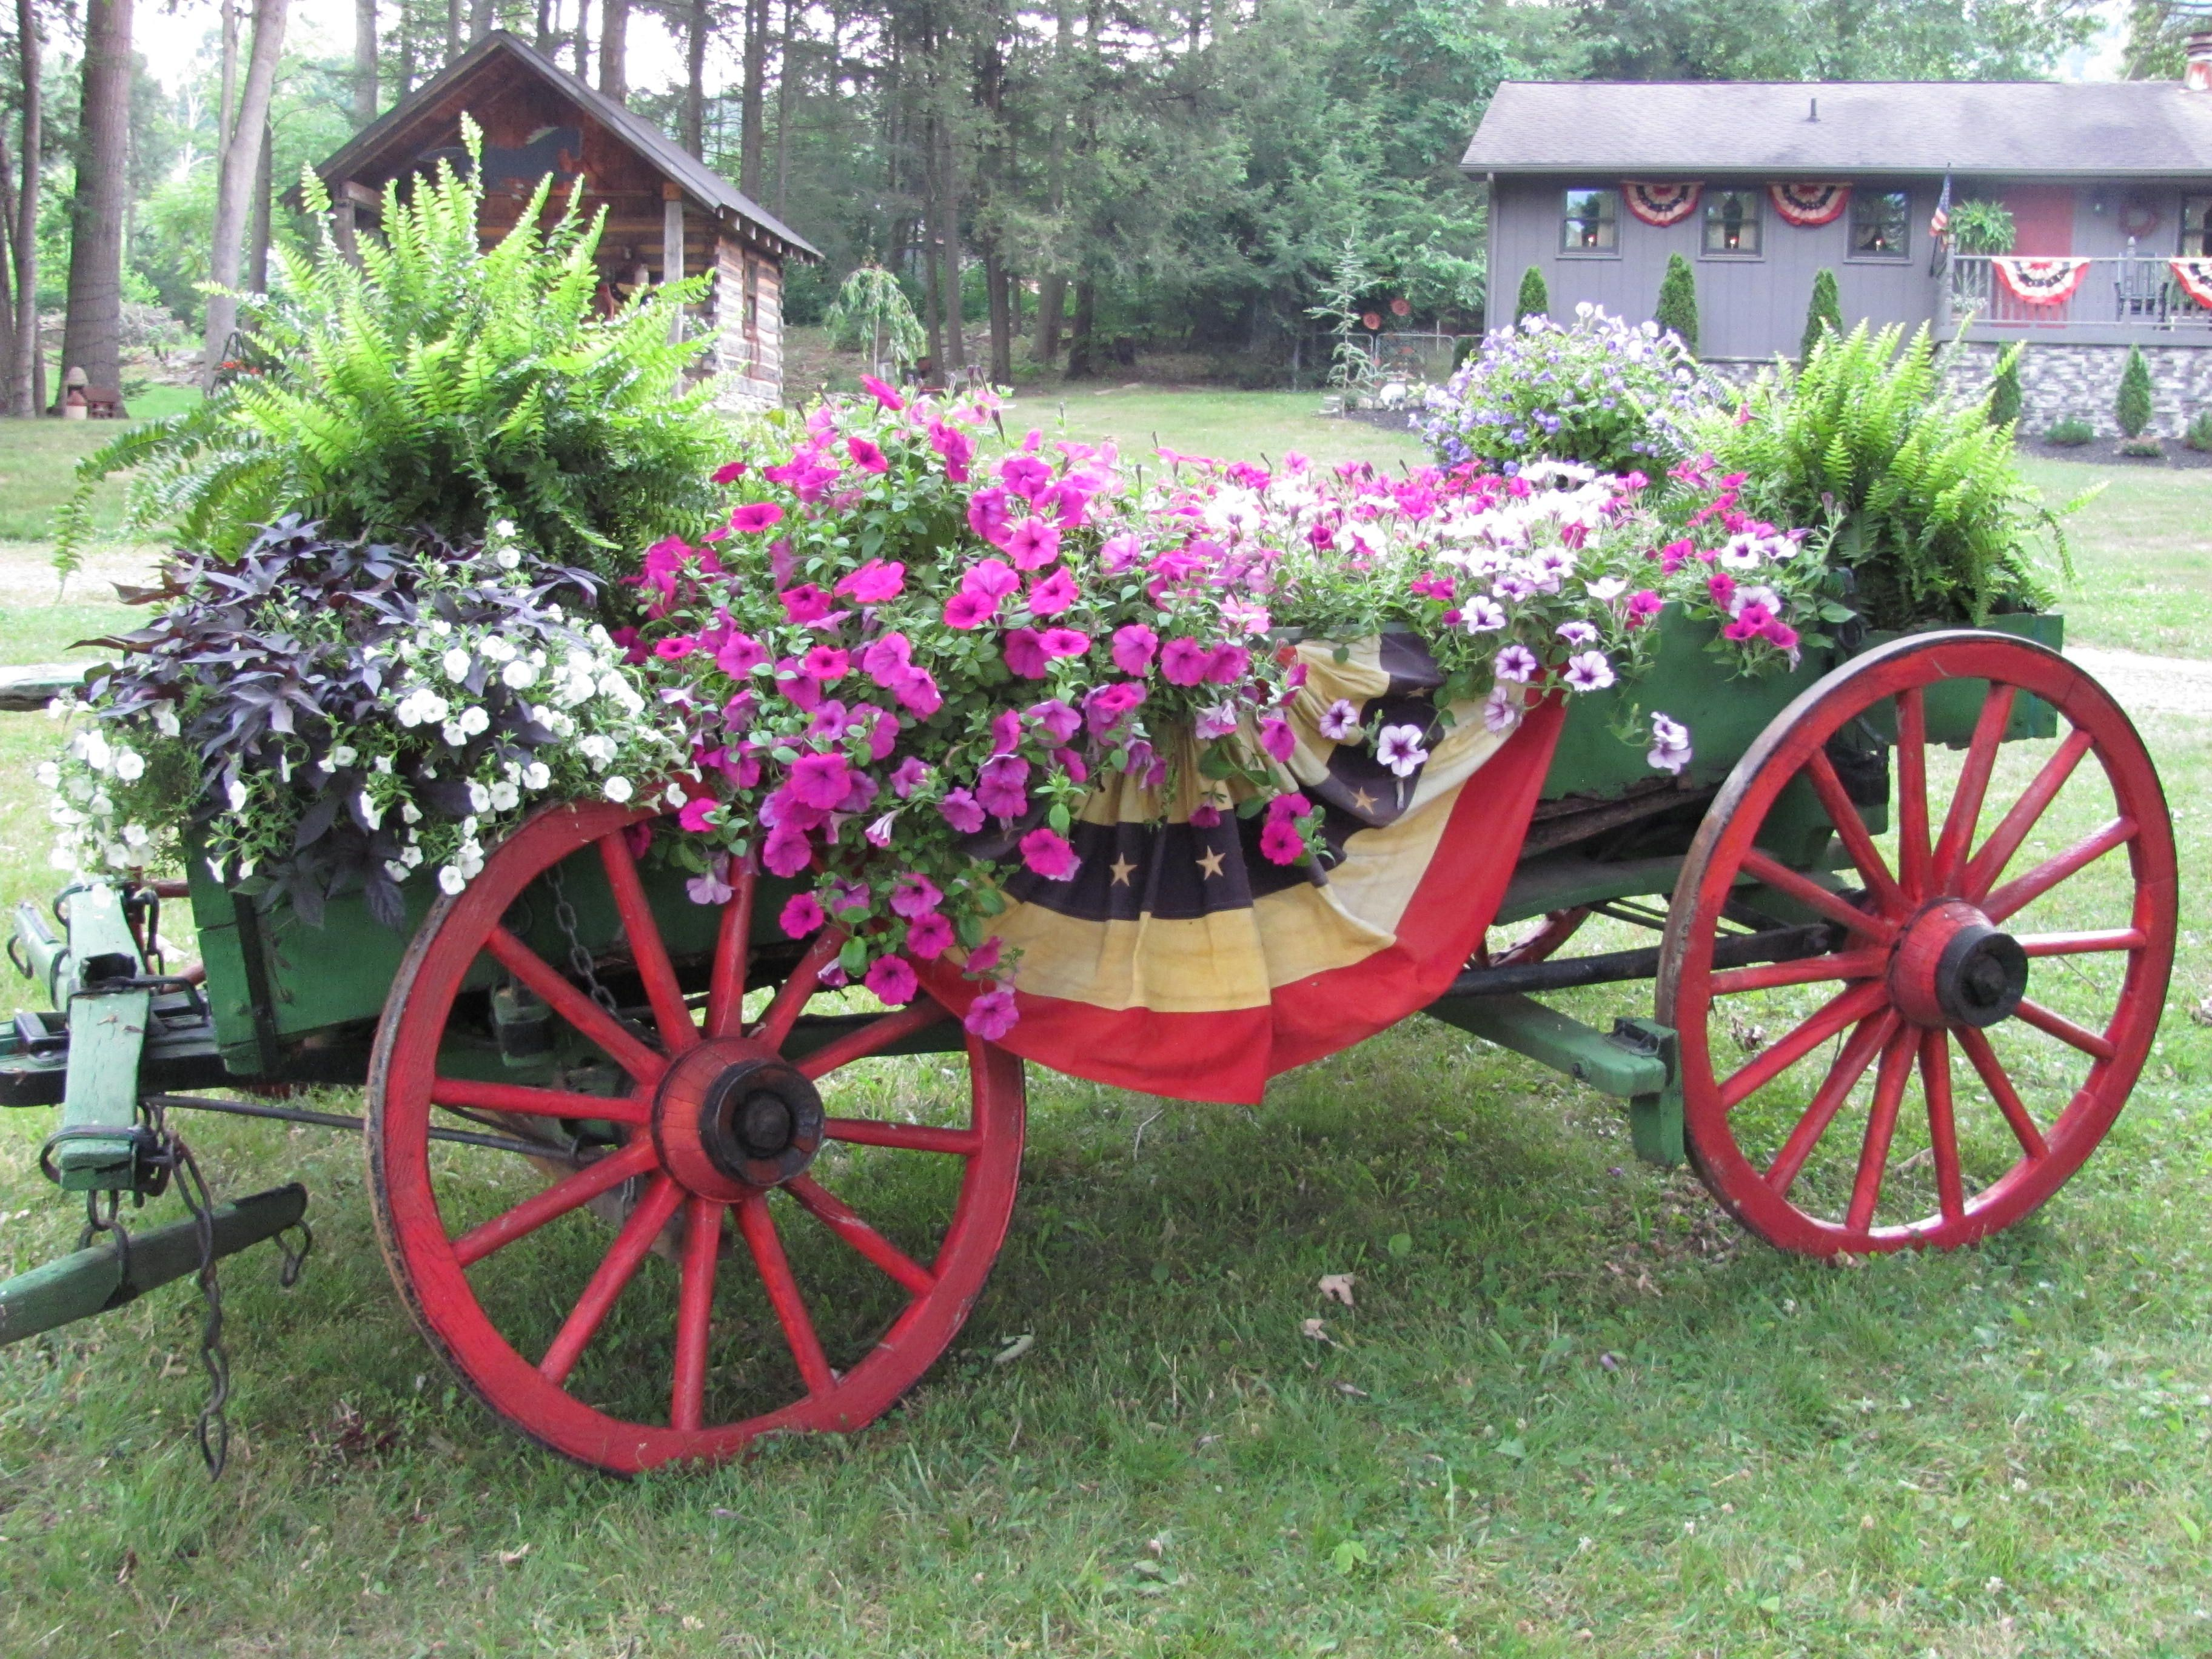 Primitive country gardens - Find This Pin And More On The Creative Country Garden